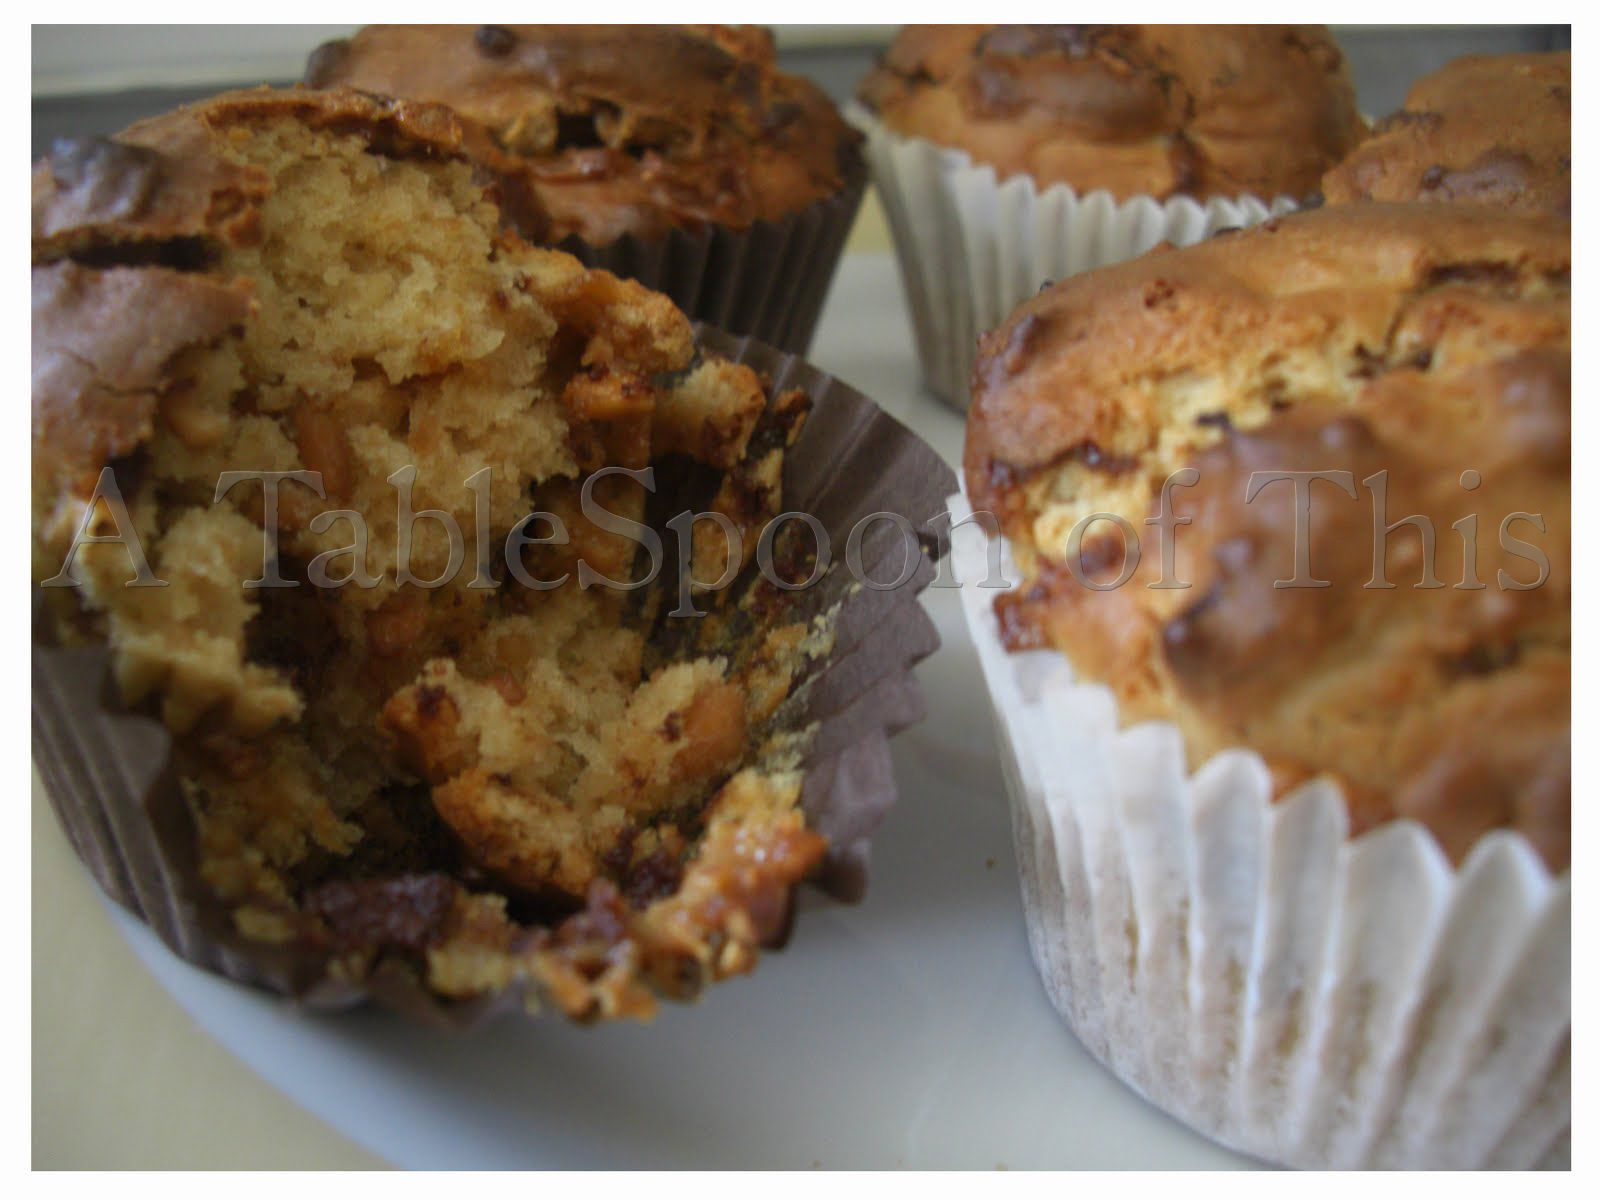 A TableSpoon Of This: Peanut butter and Snickers muffins